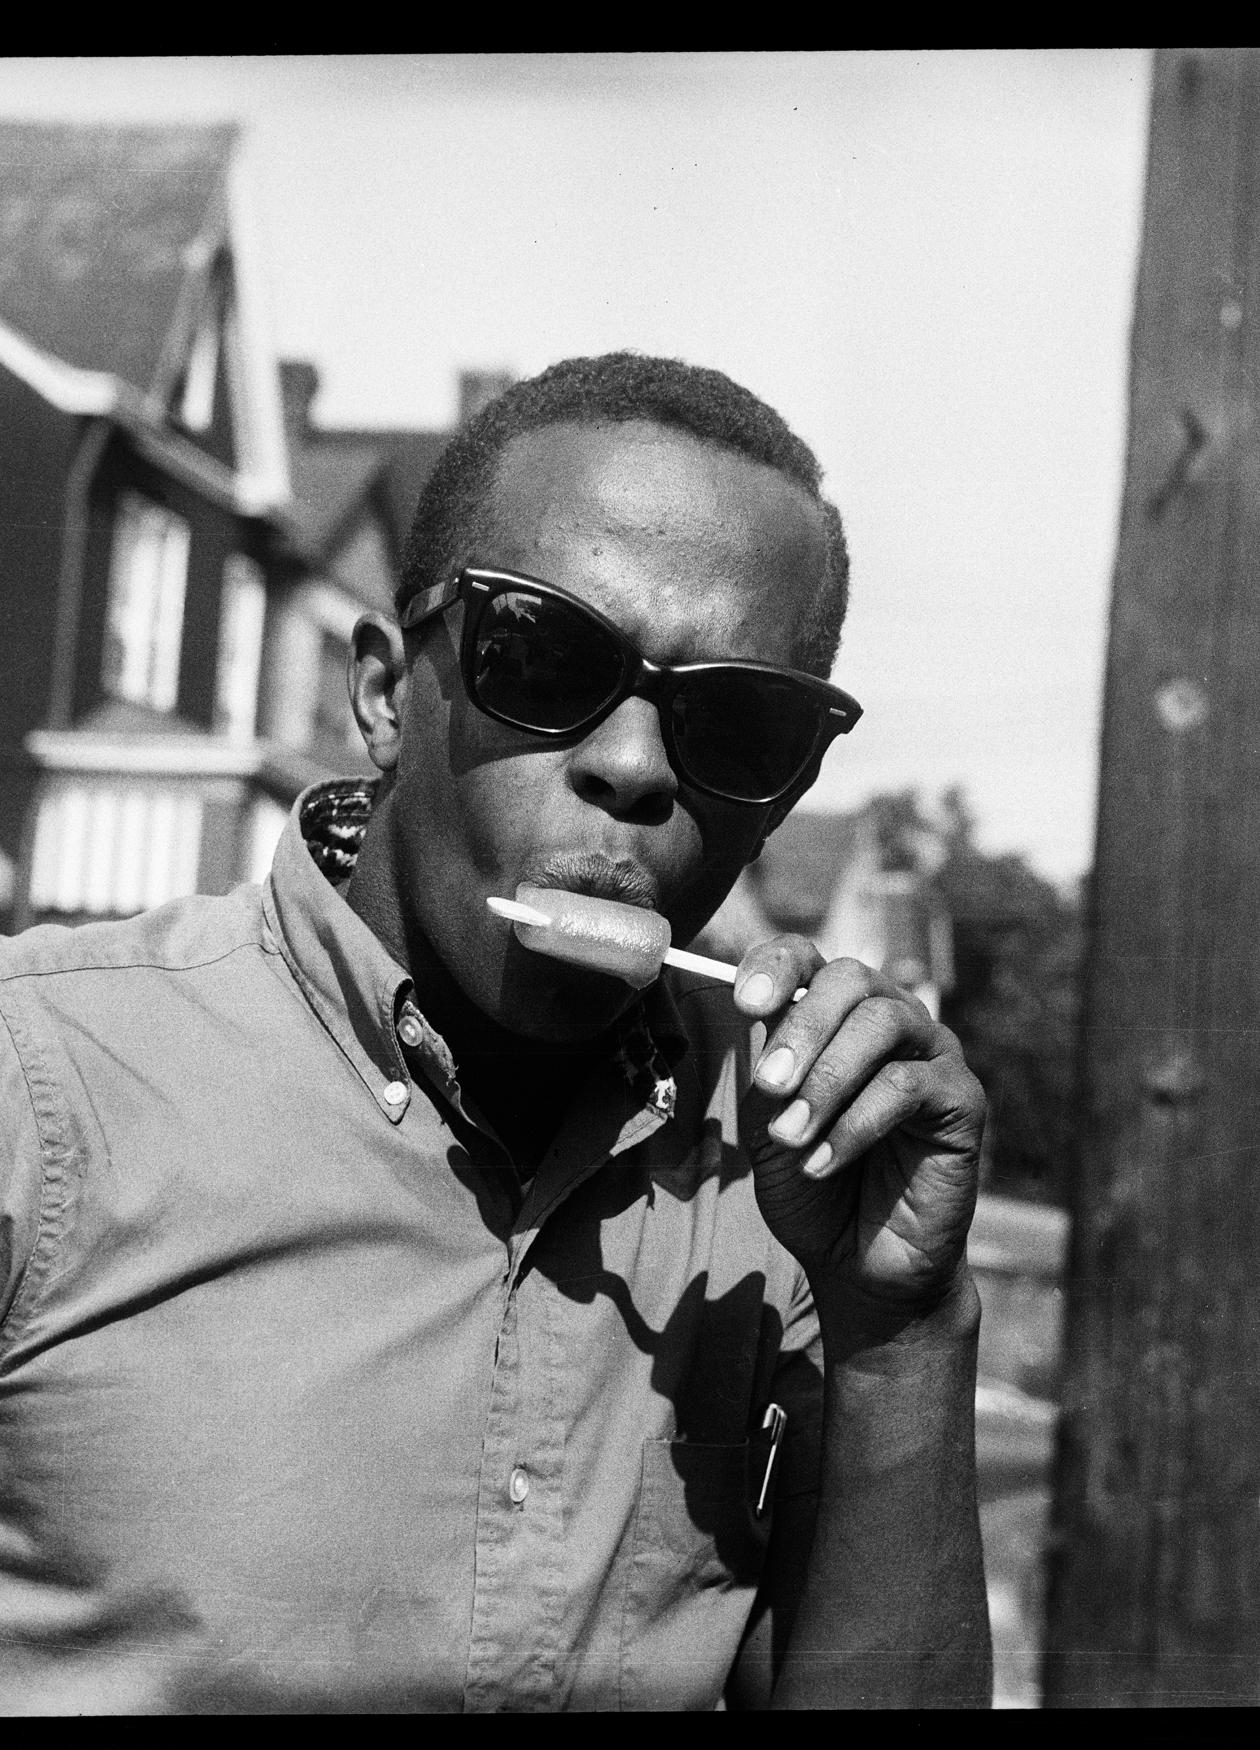 A young african american man wearing sunglasses and eating a popsicle